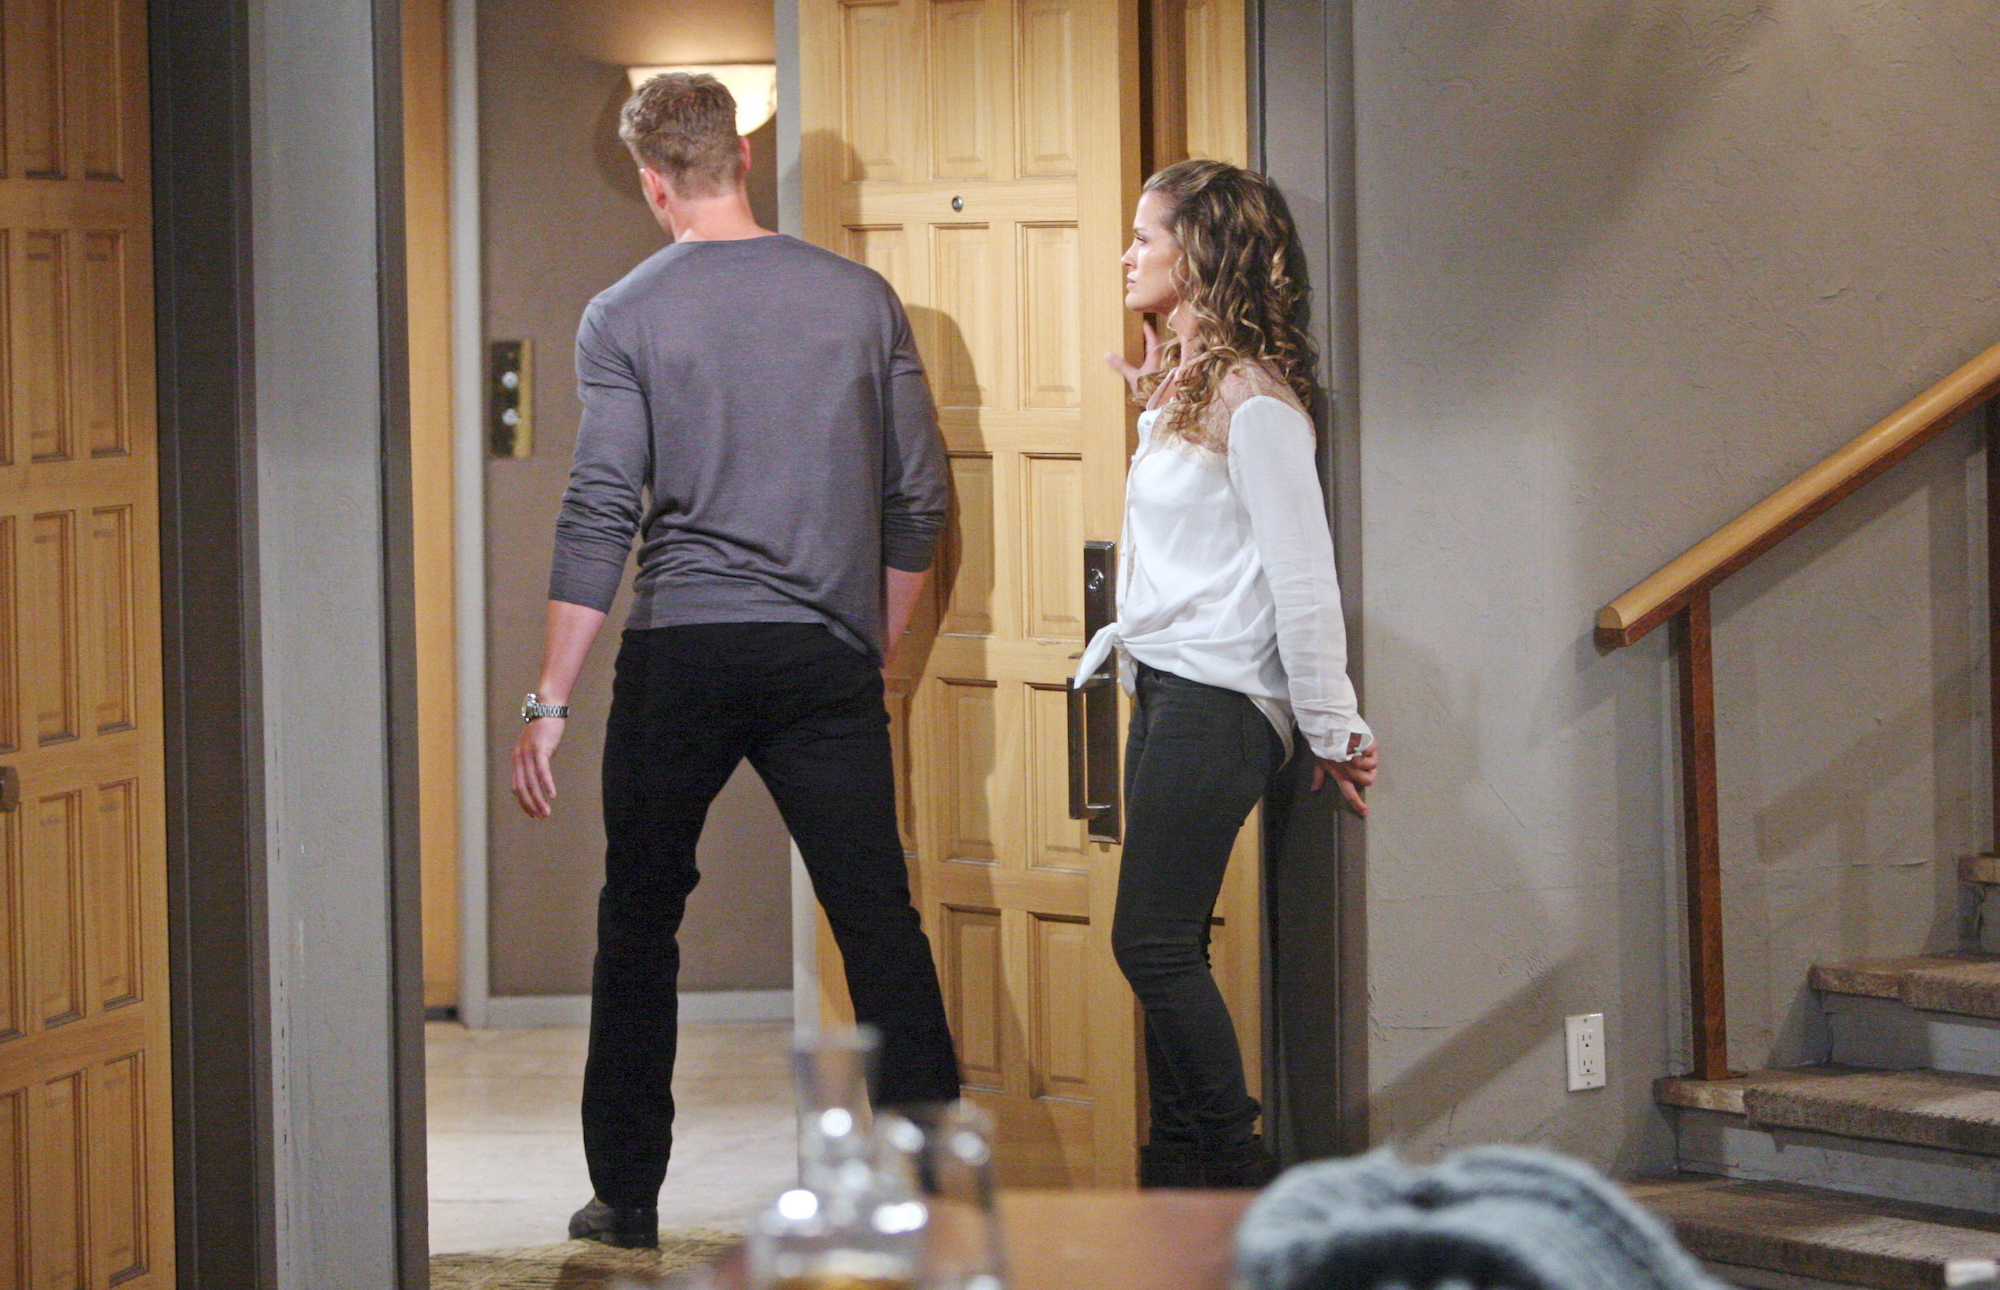 Chelsea banishes Adam from her home